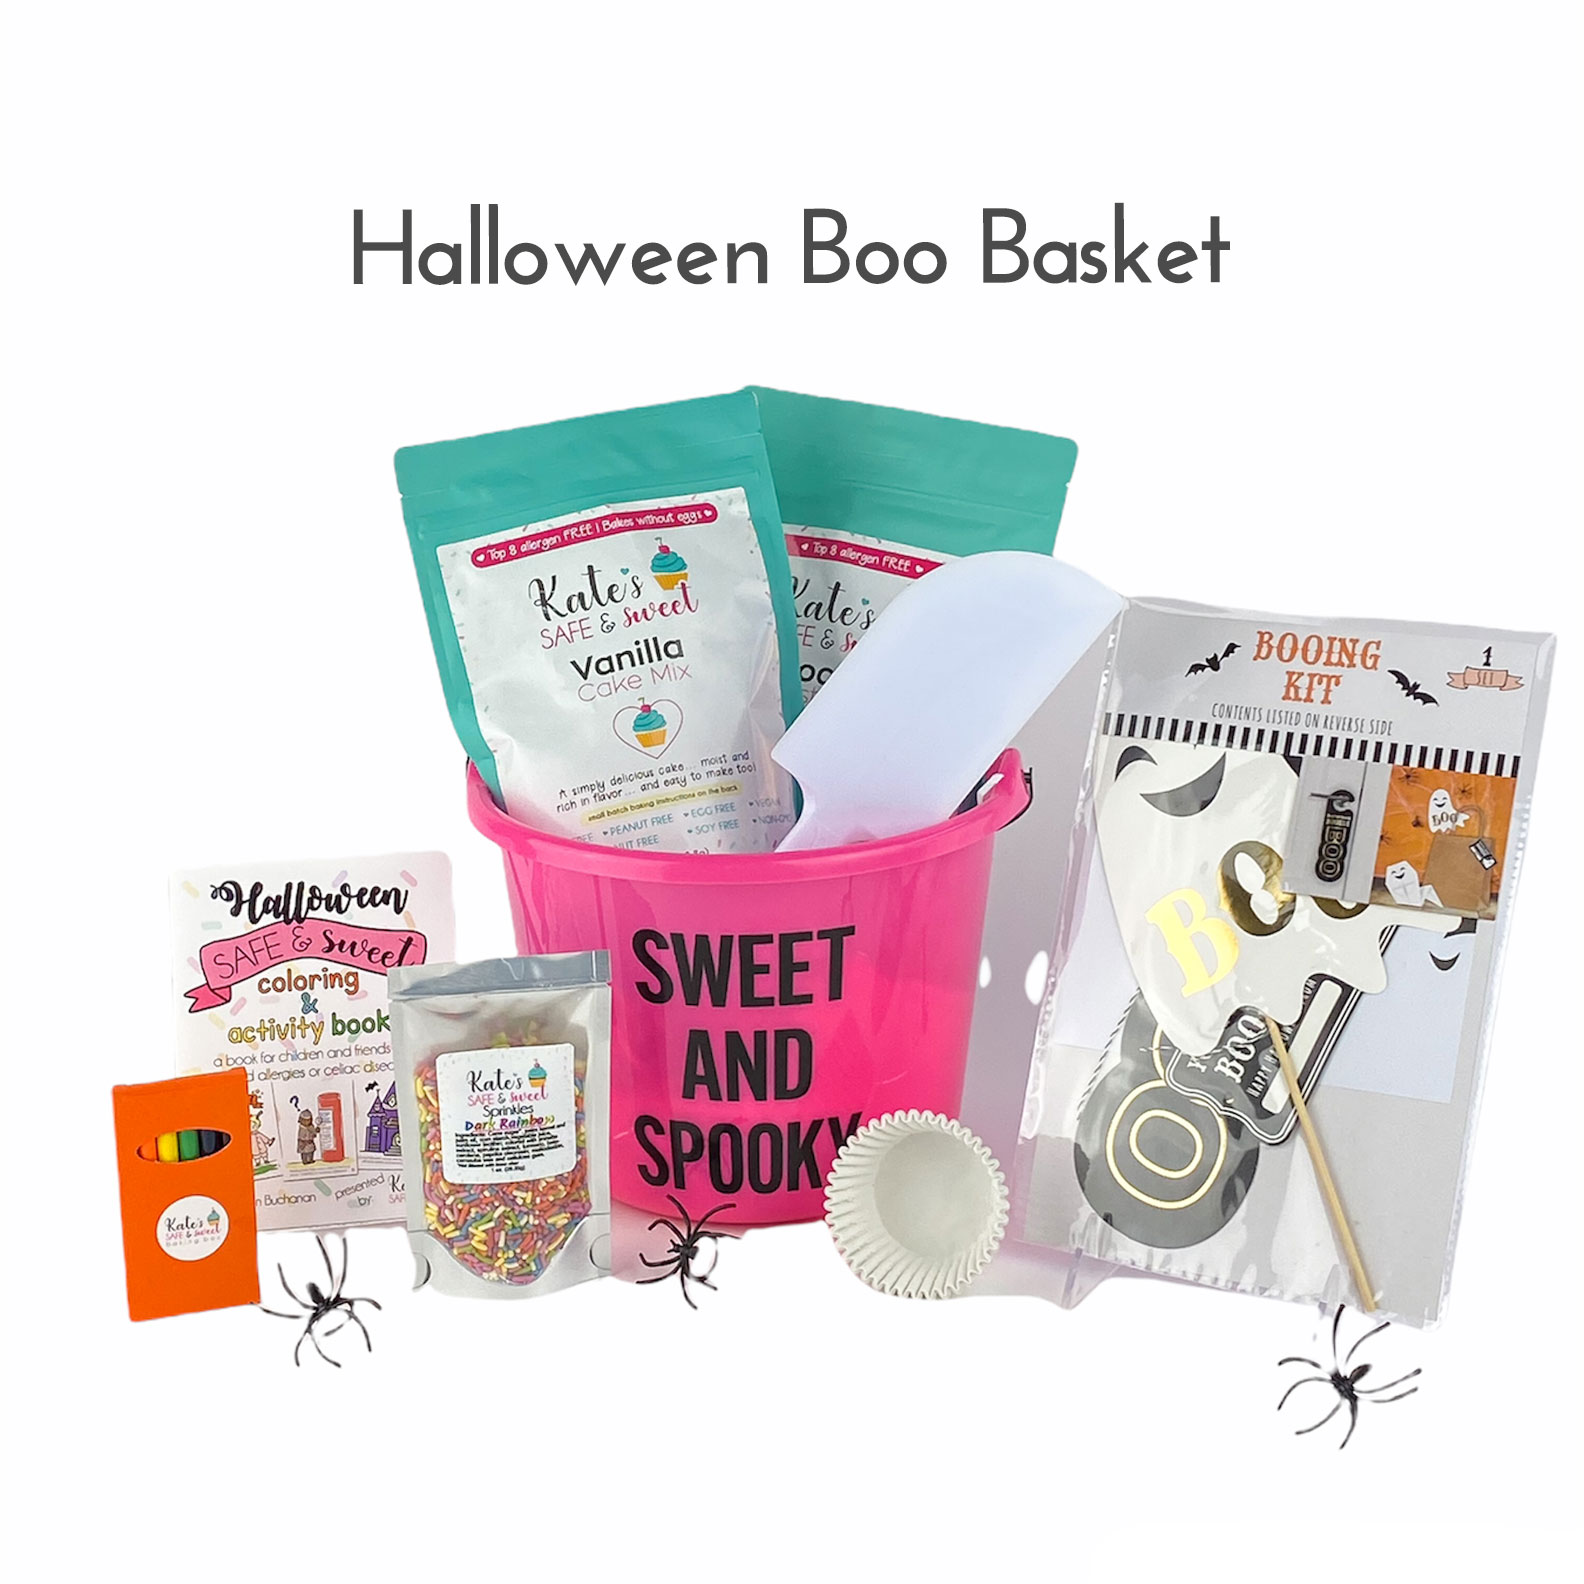 Kate's-Safe-and-Sweet---Halloween-Boo-Basket---Sweet-and-Spooky